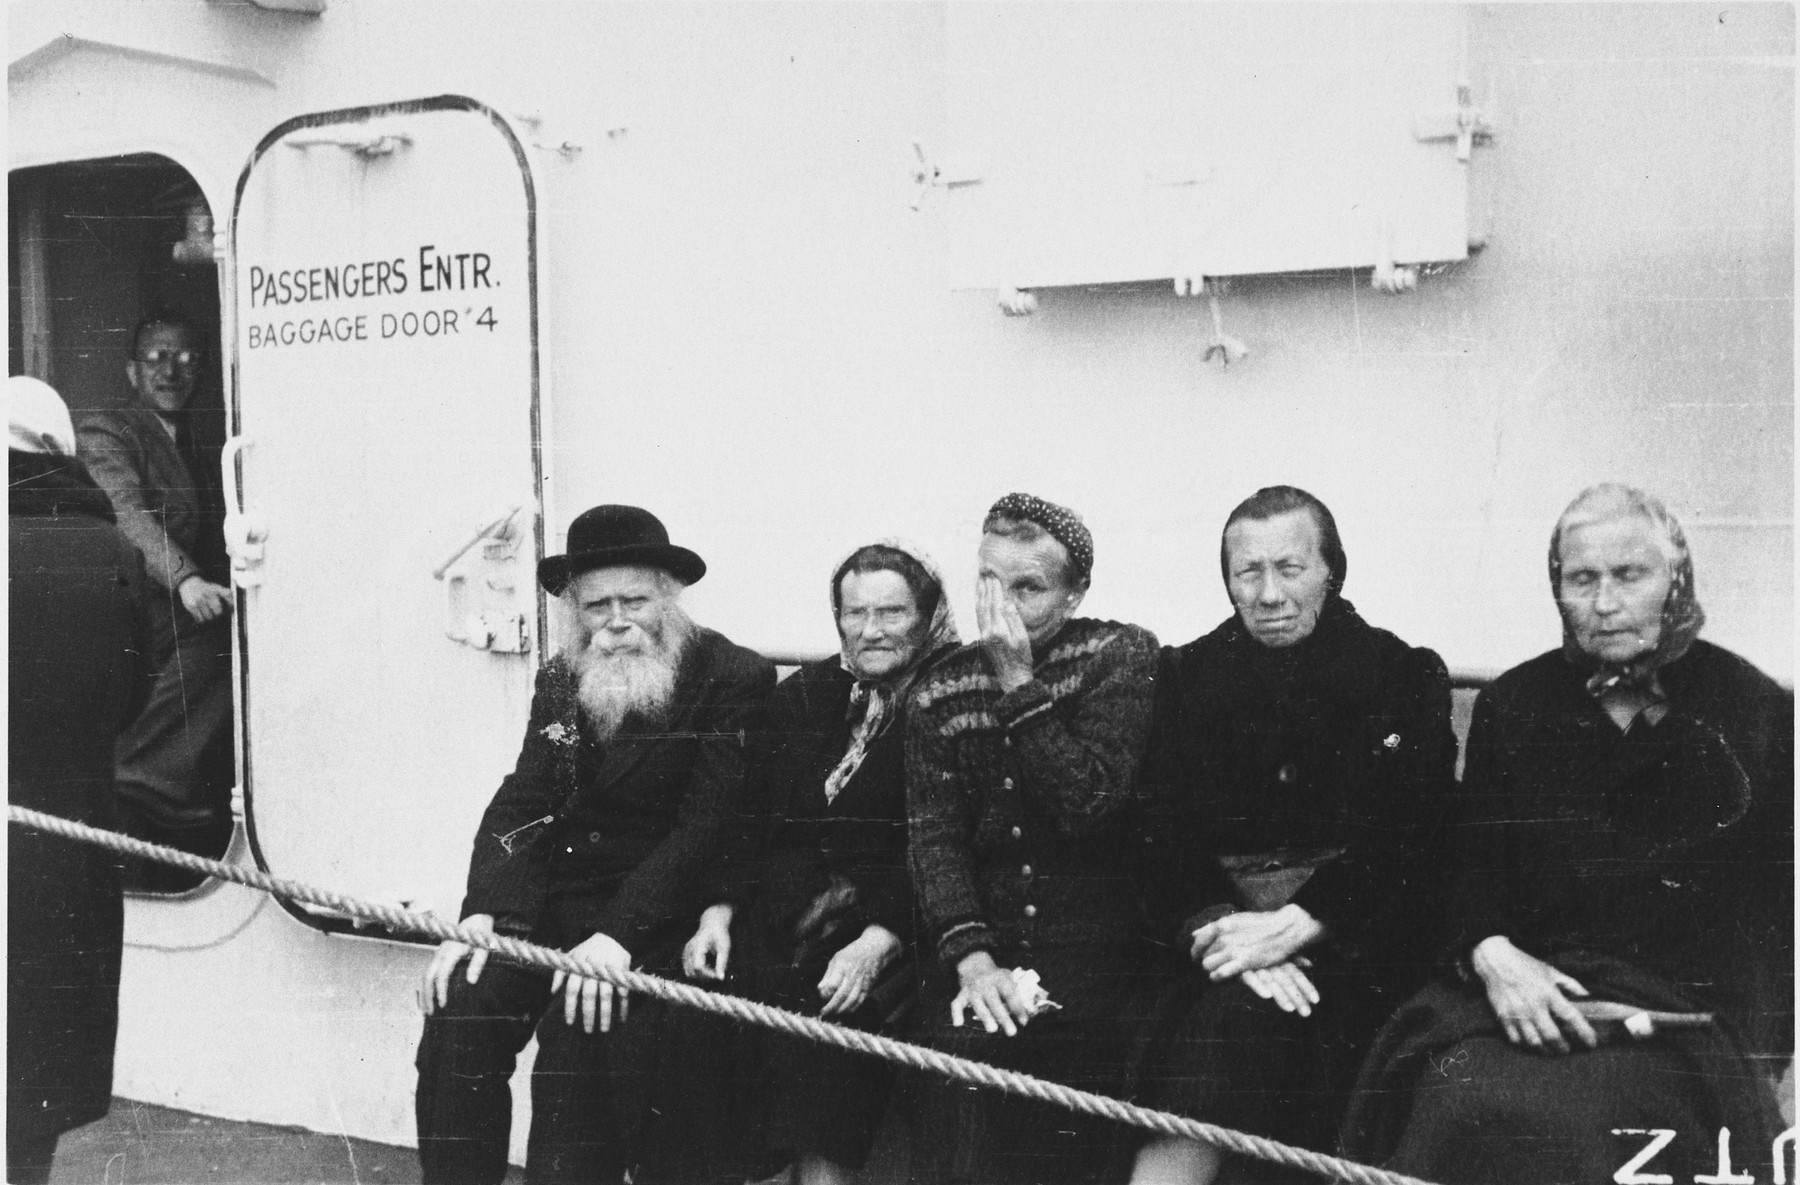 Elderly Jews sit on the deck of the SS Marine Marlin while en route to the United States.  Among those pictured (seated on the far left) are Shlomo Chaim and Brandel (nee Hoffert) Nussbaum, from Kolbuszowa, Poland. They survived the war as prisoners in a gulag in Siberia, with their daughter.